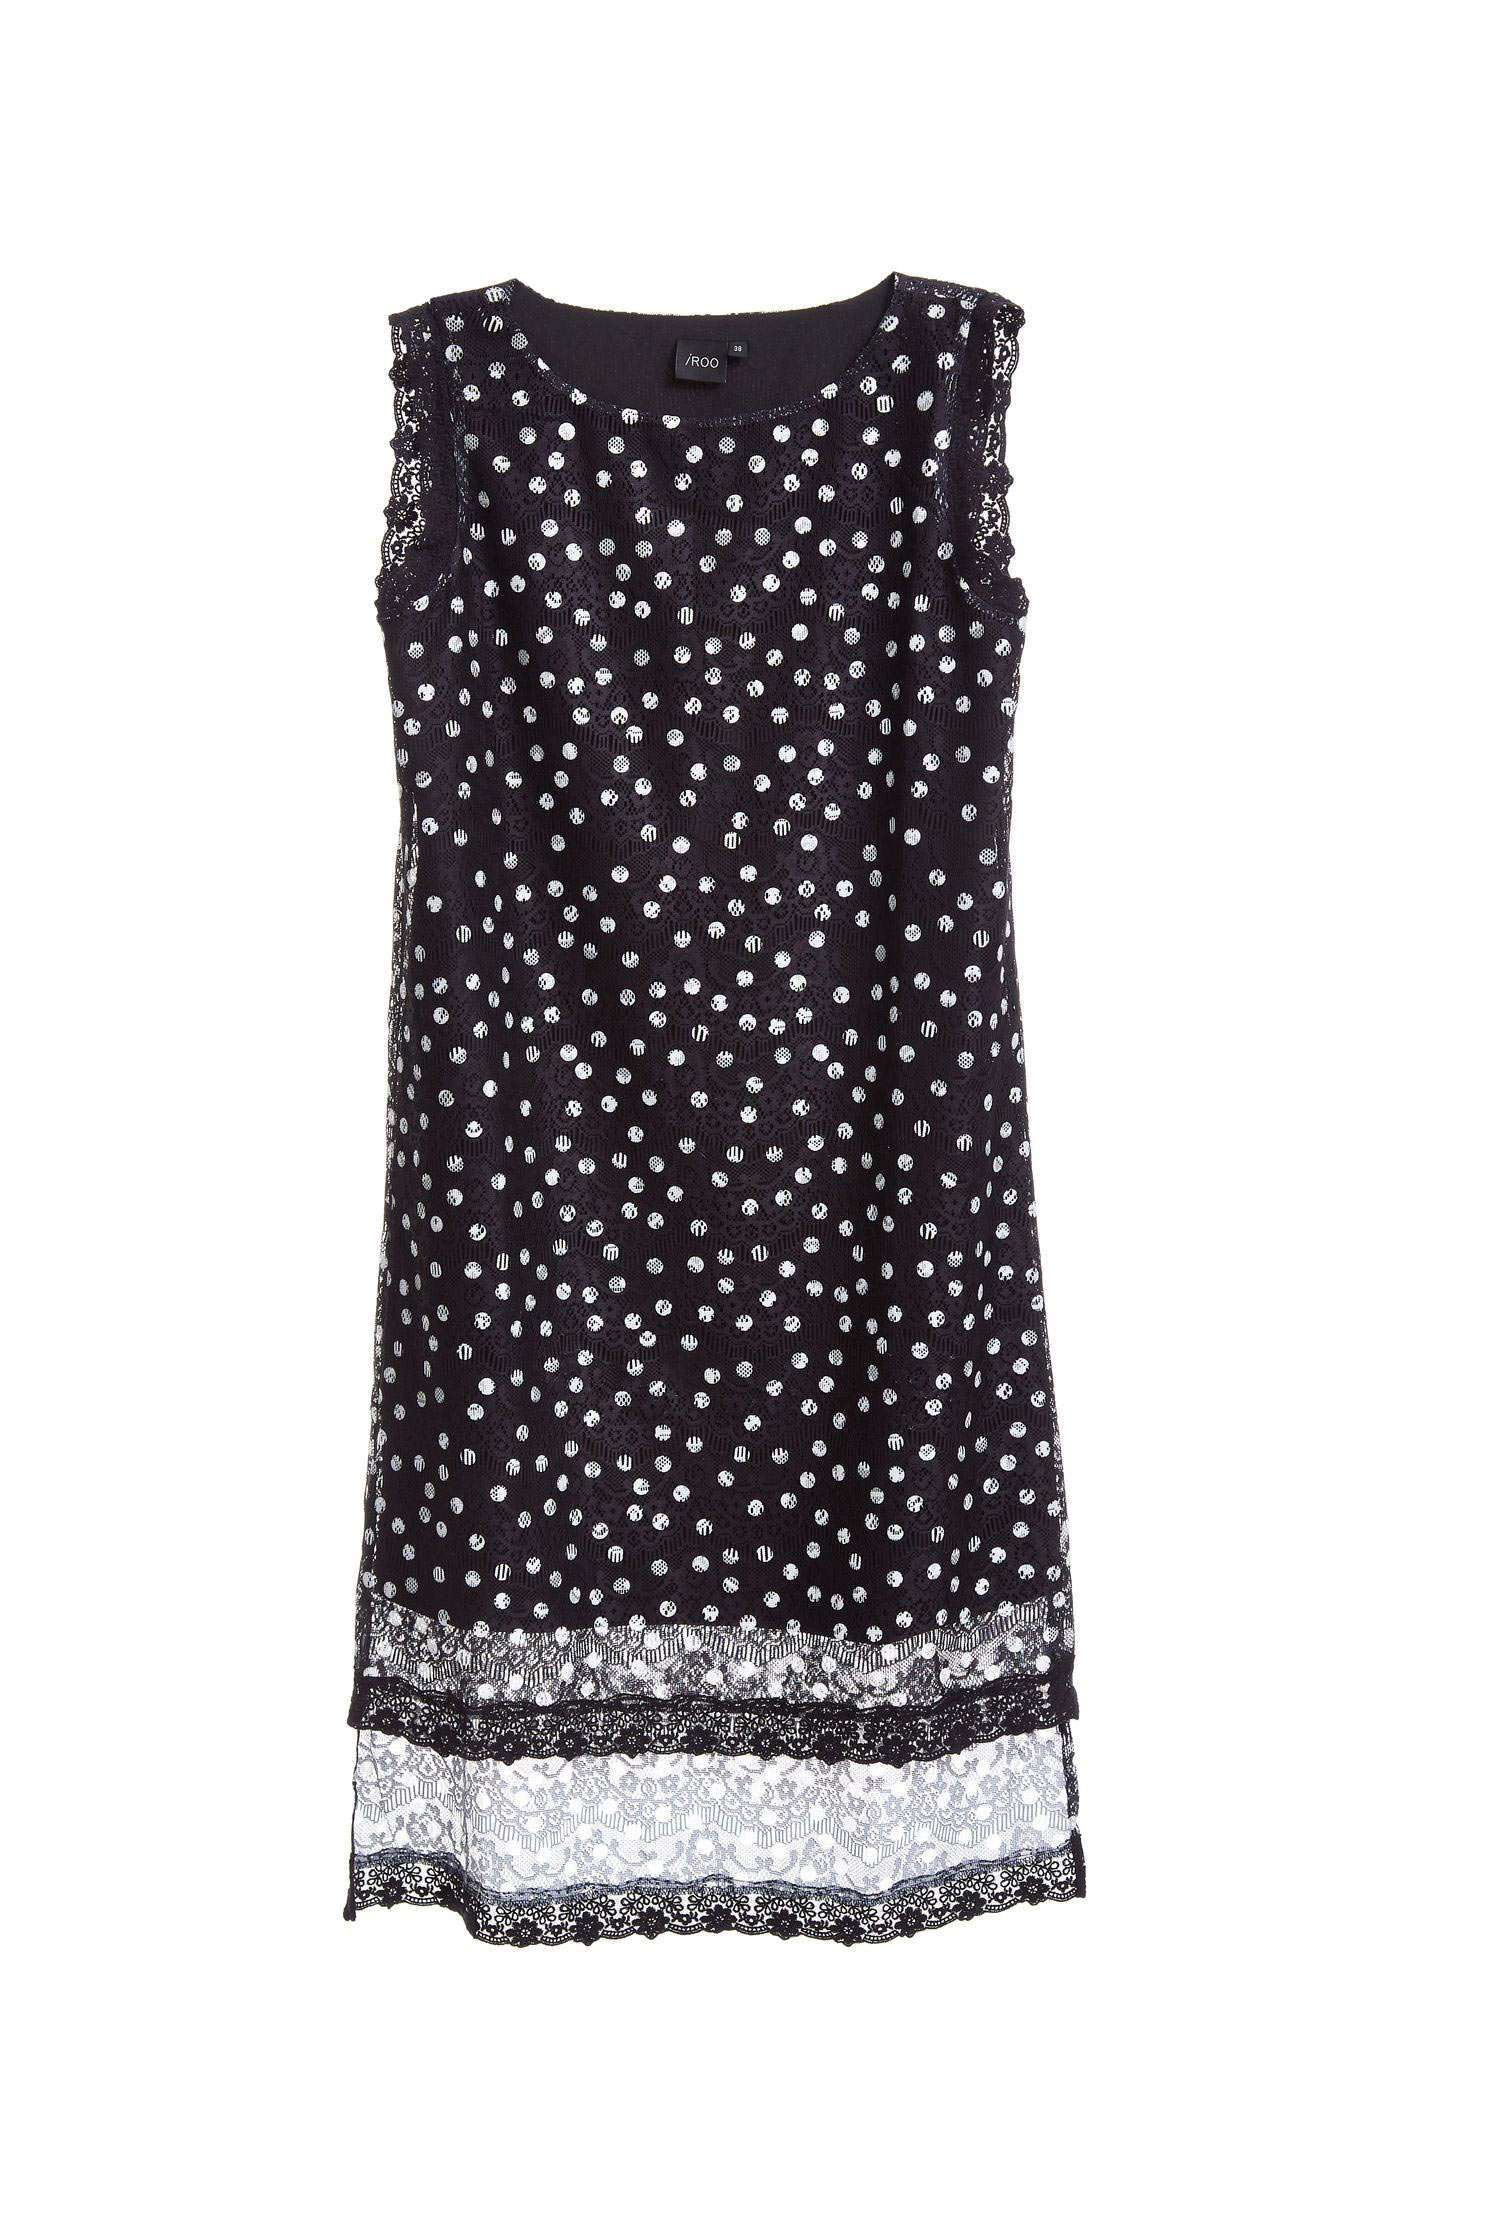 Polka dots classic fashion dress